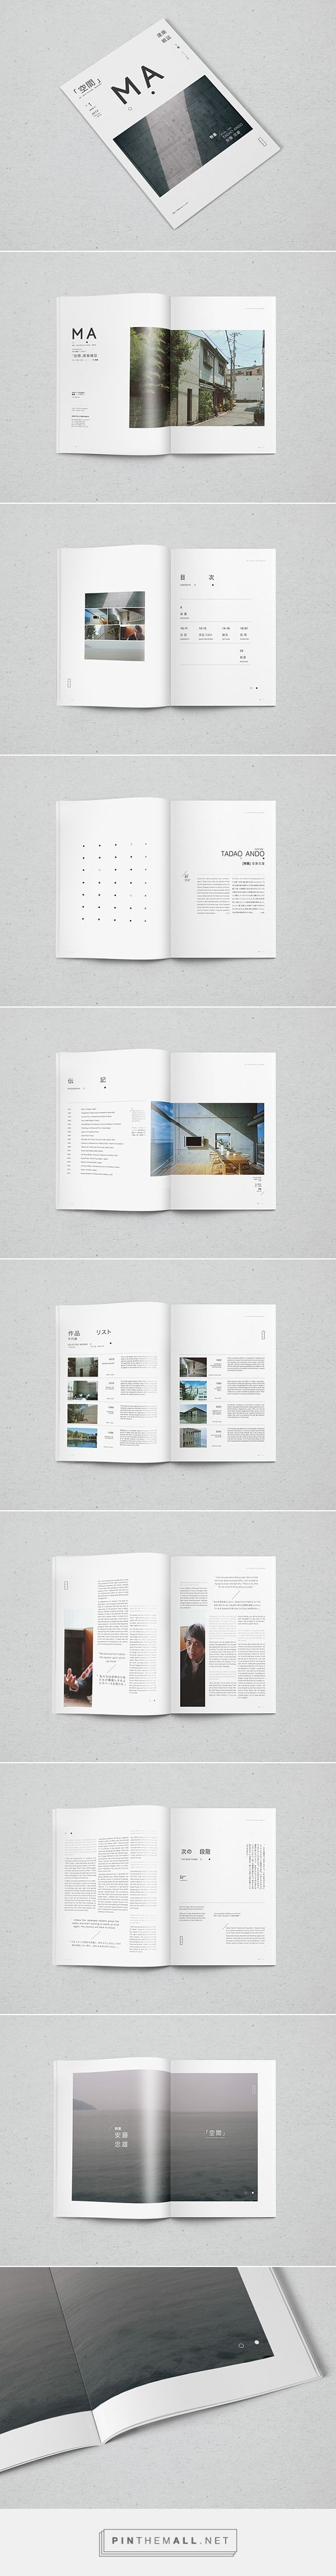 MA [空間] - Architectural Magazine on Behance - created via http://pinthemall.net